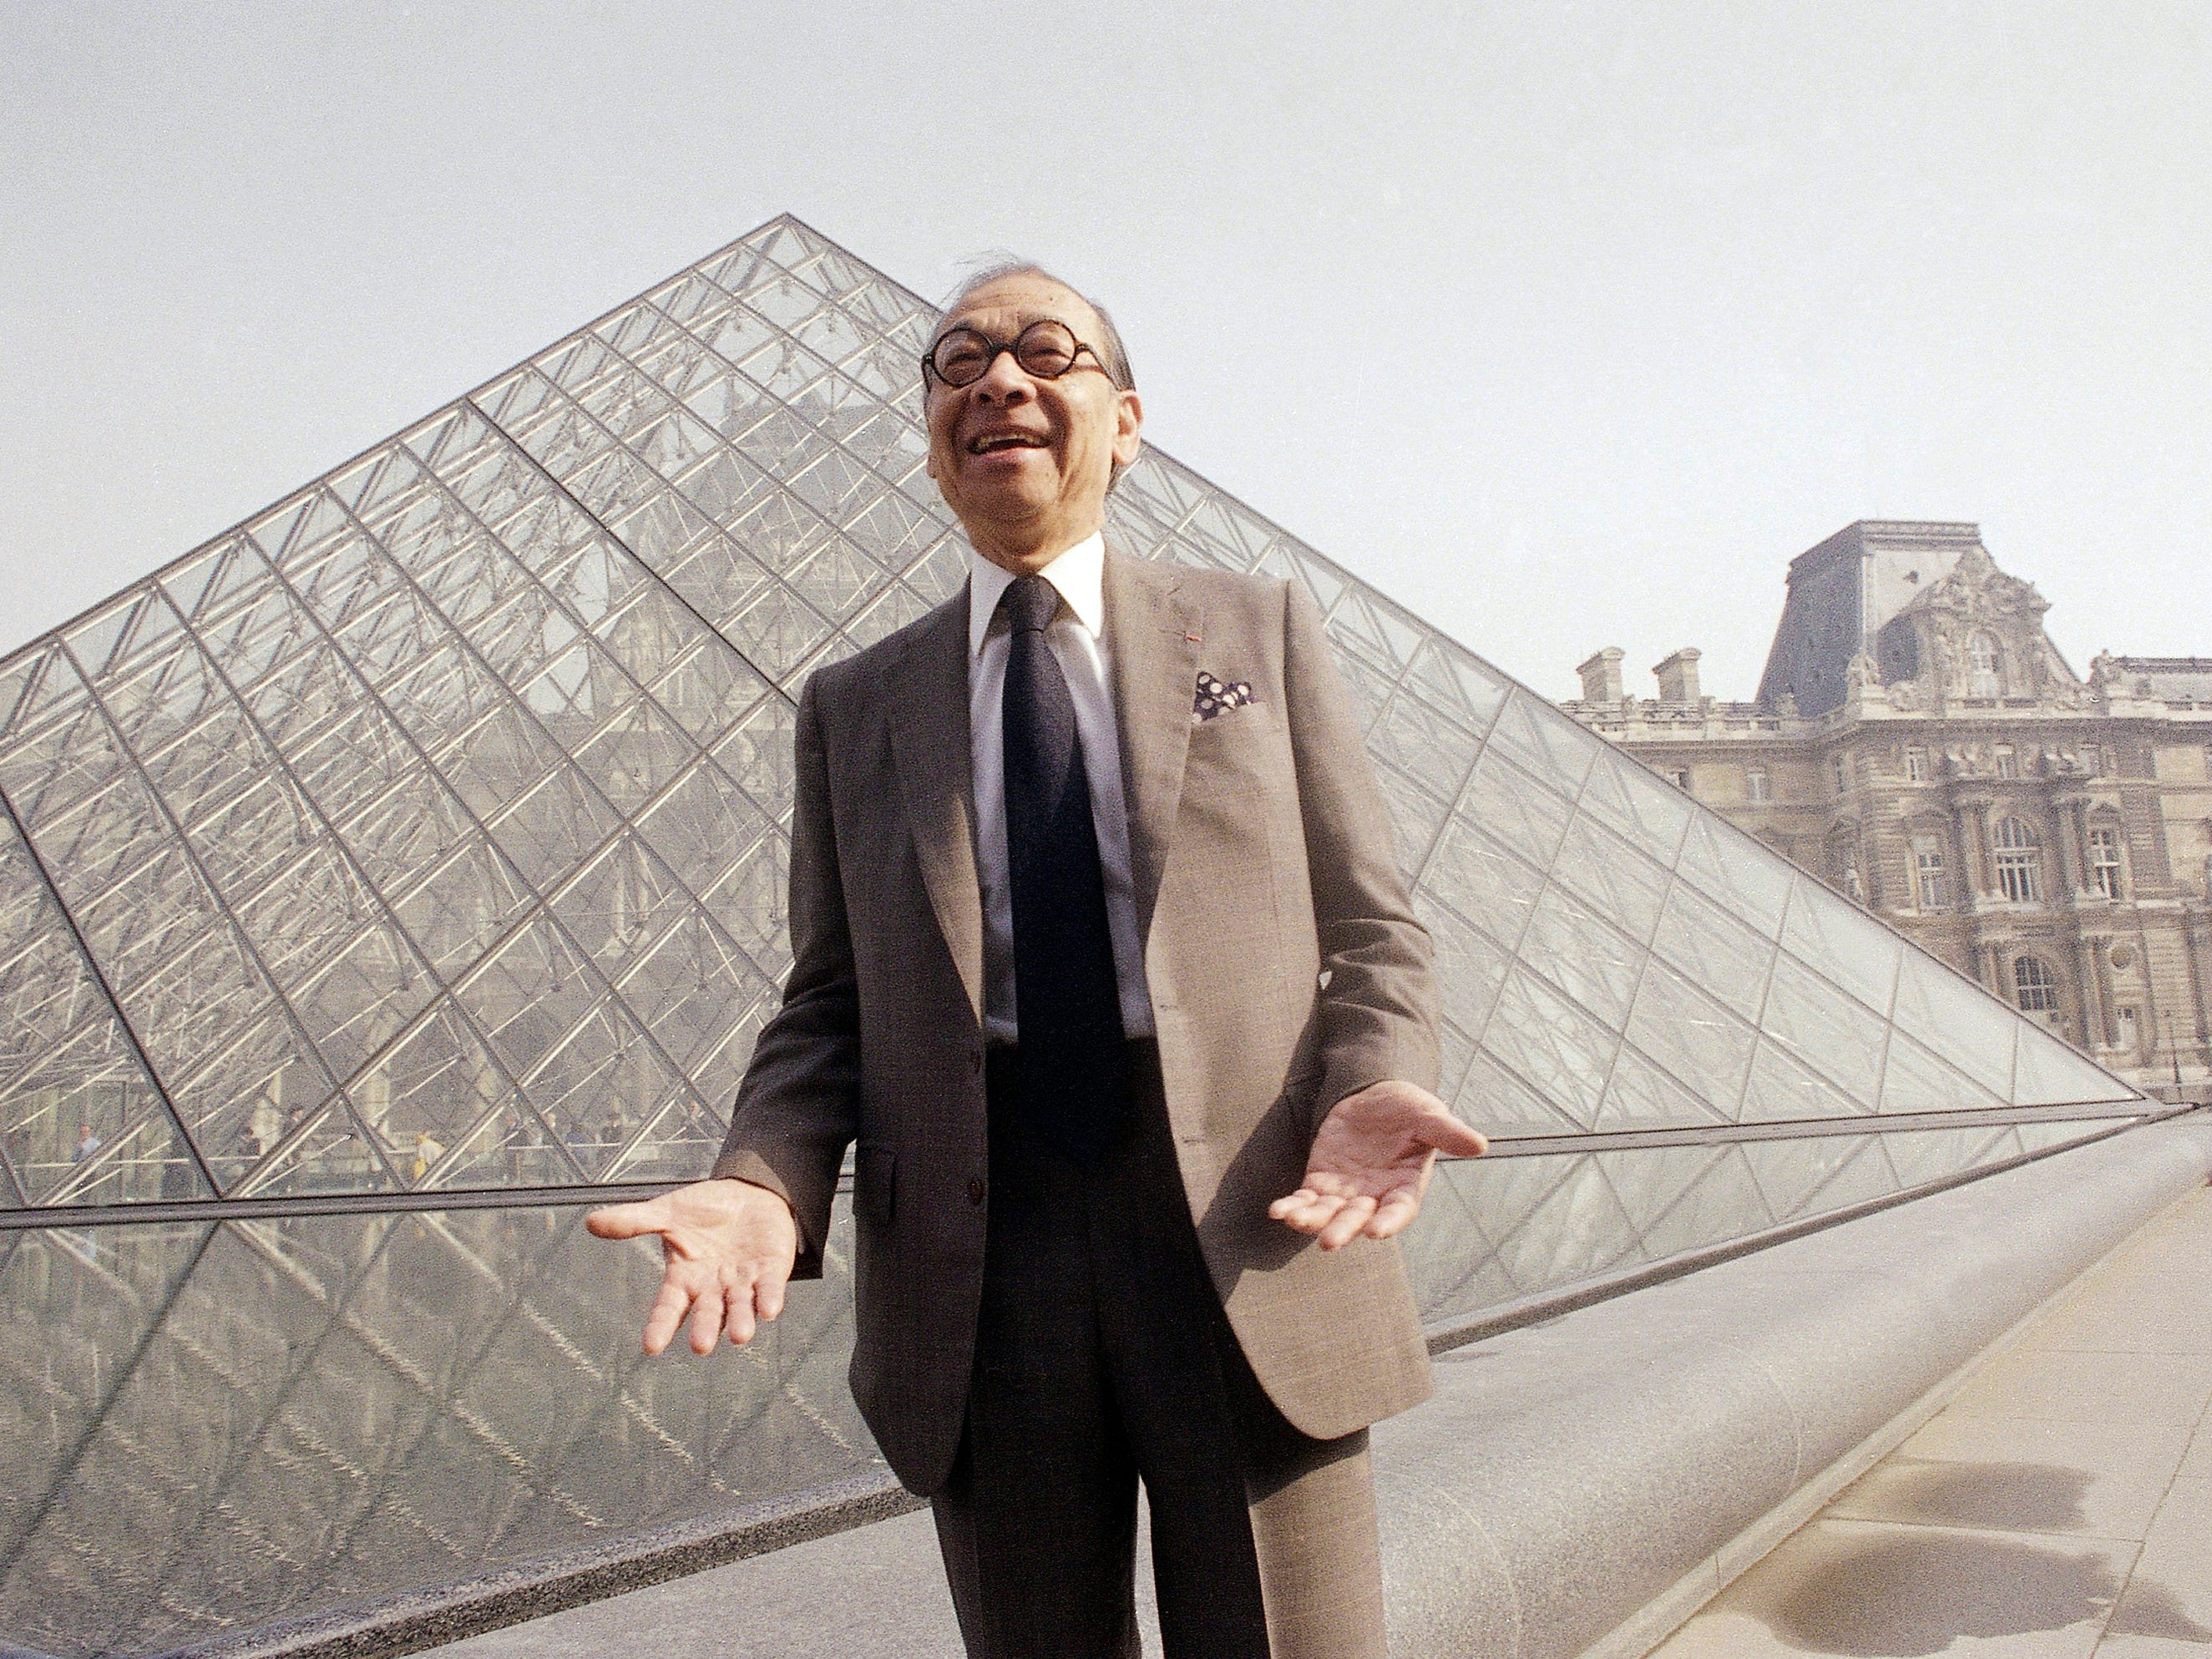 In this March 29, 1989, file photo, Chinese-American architect I.M. Pei laughs while posing for a portrait in front of the Louvre glass pyramid, which he designed, in the museum's Napoleon Courtyard, prior to its inauguration in Paris. Pei, the globe-trotting architect who revived the Louvre museum in Paris with a giant glass pyramid and captured the spirit of rebellion at the multi-shaped Rock and Roll Hall of Fame, has died at age 102, a spokesman confirmed Thursday, May 16, 2019.